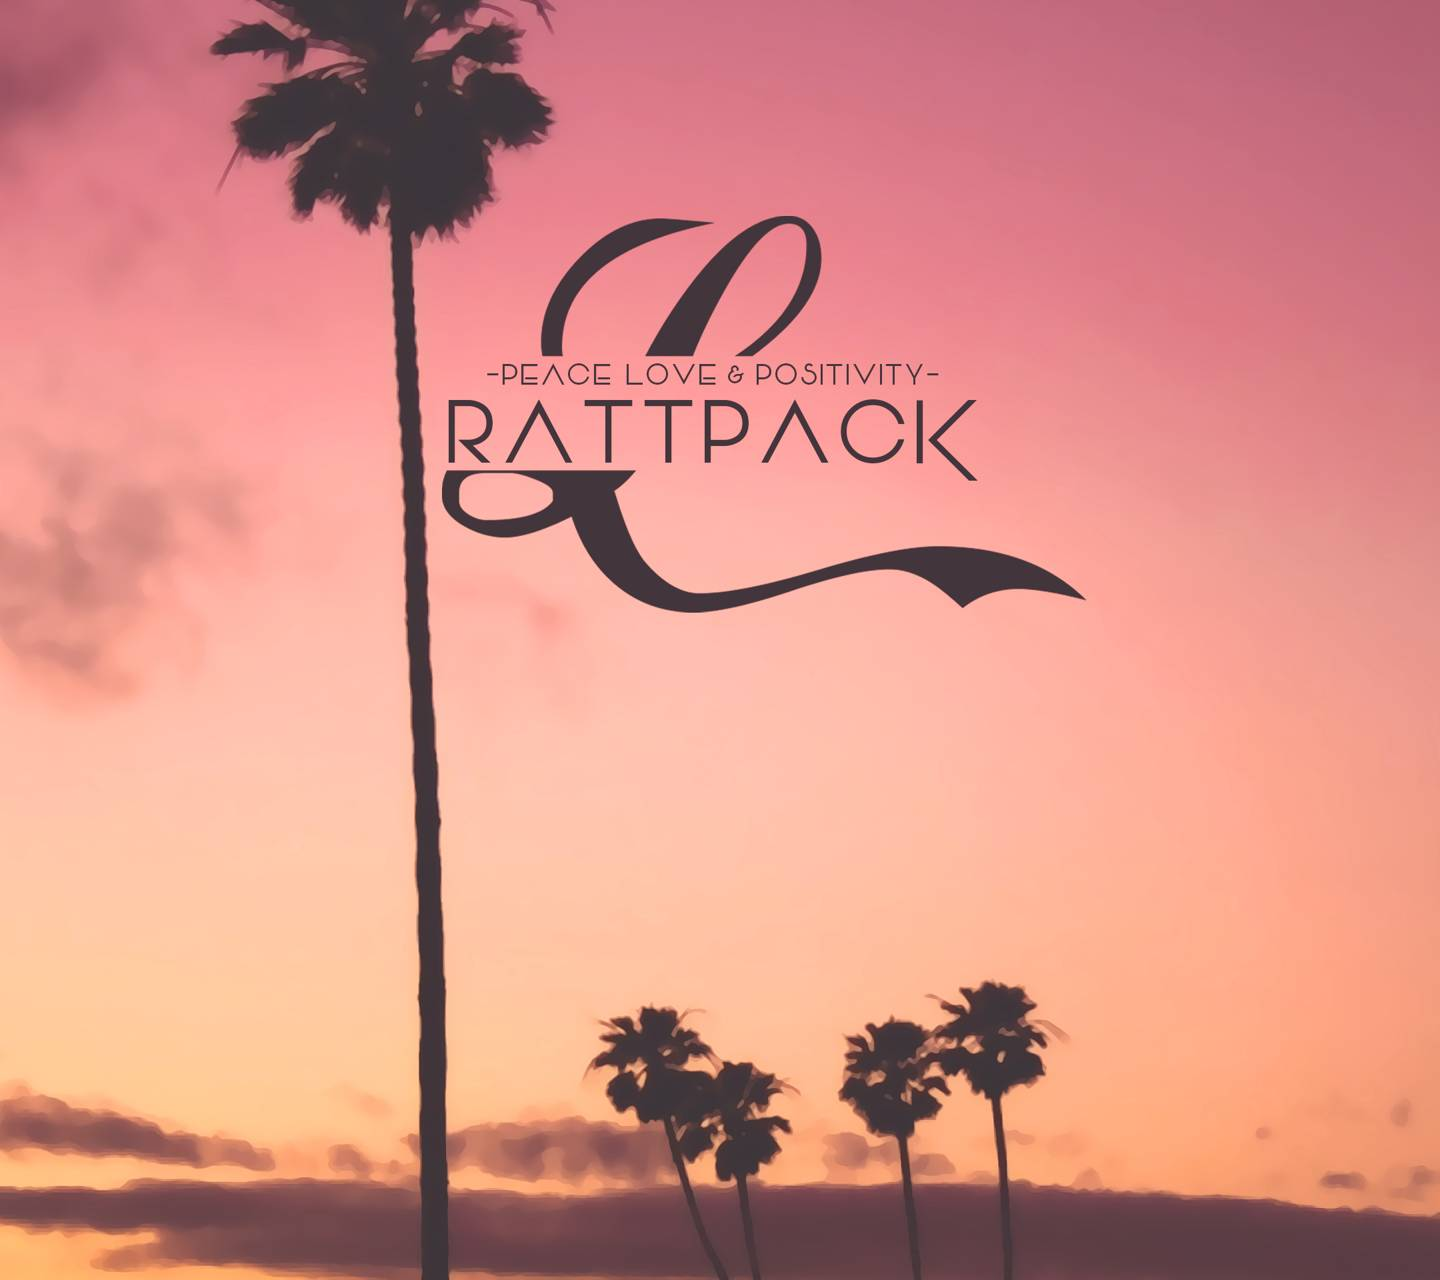 RATTPACK Wallpaper By Youngsinatra24